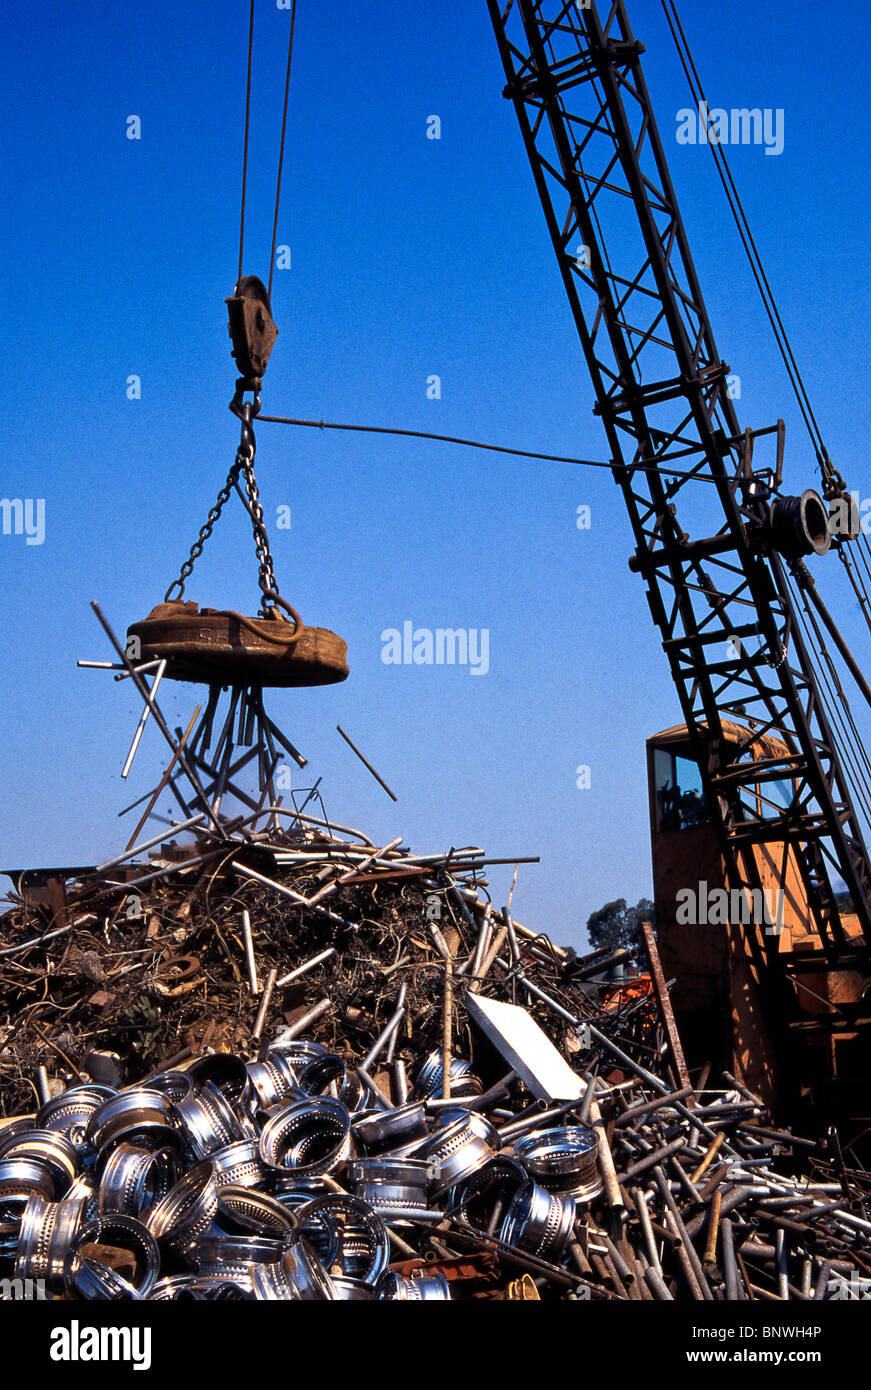 A giant crane-mounted electromagnet is used to move a pile of iron and steel items at a scrap yard in Carson, California. - Stock Image